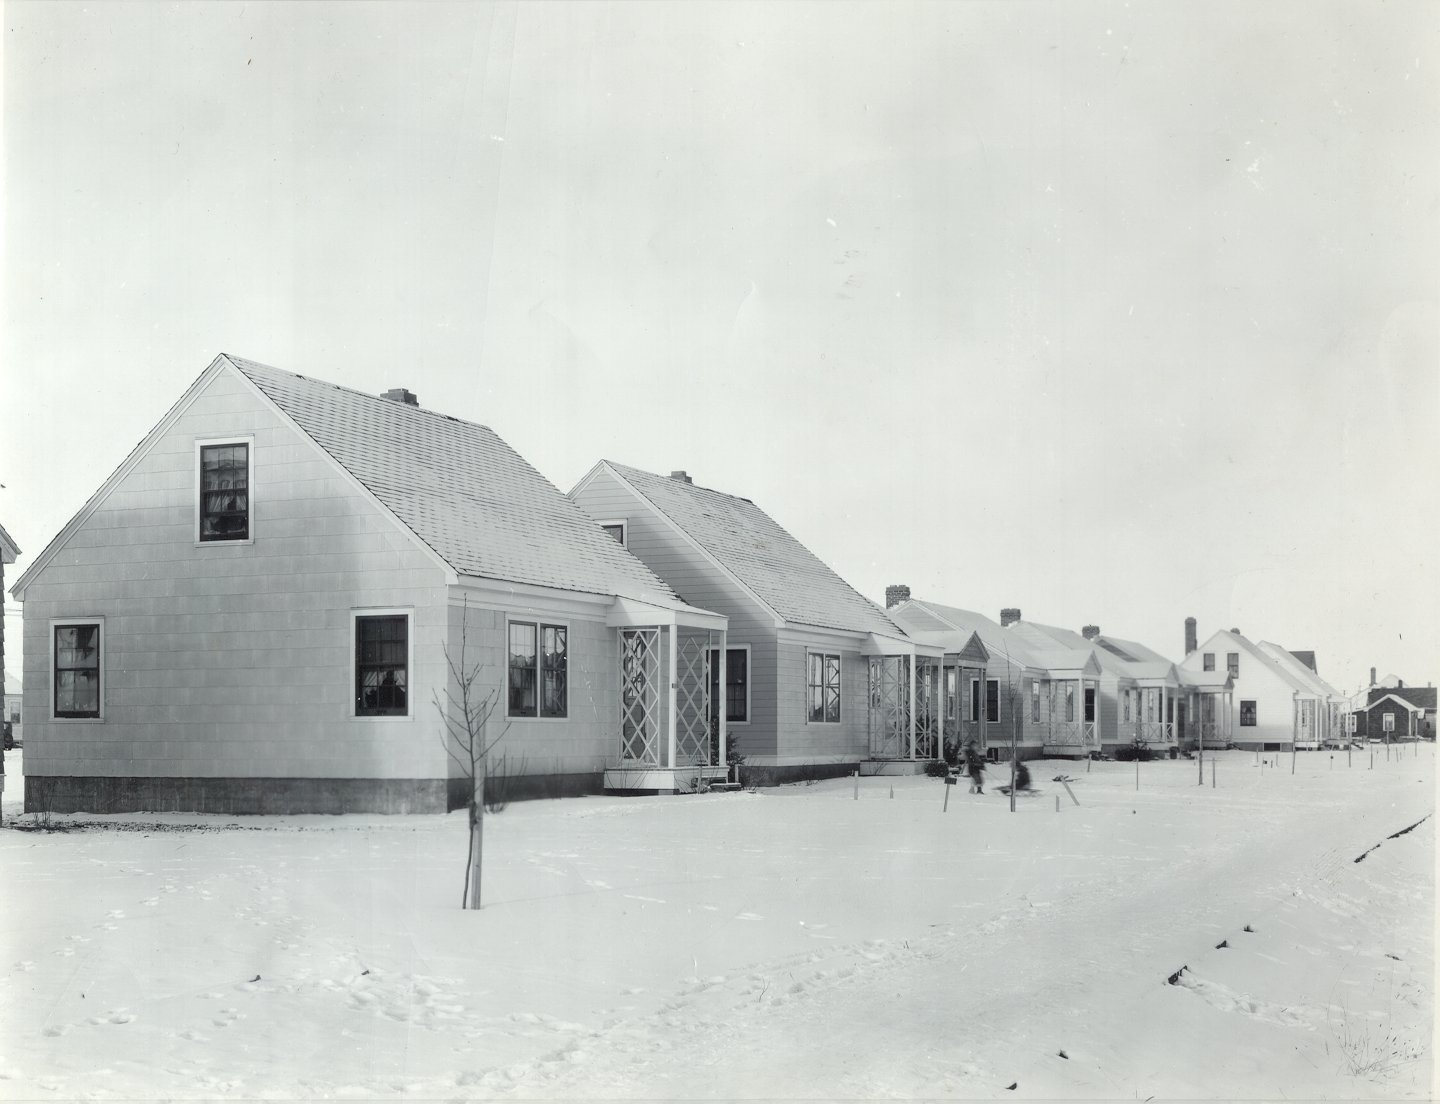 http://scaa.usask.ca/gallery/war/images/wartime_houses.jpg